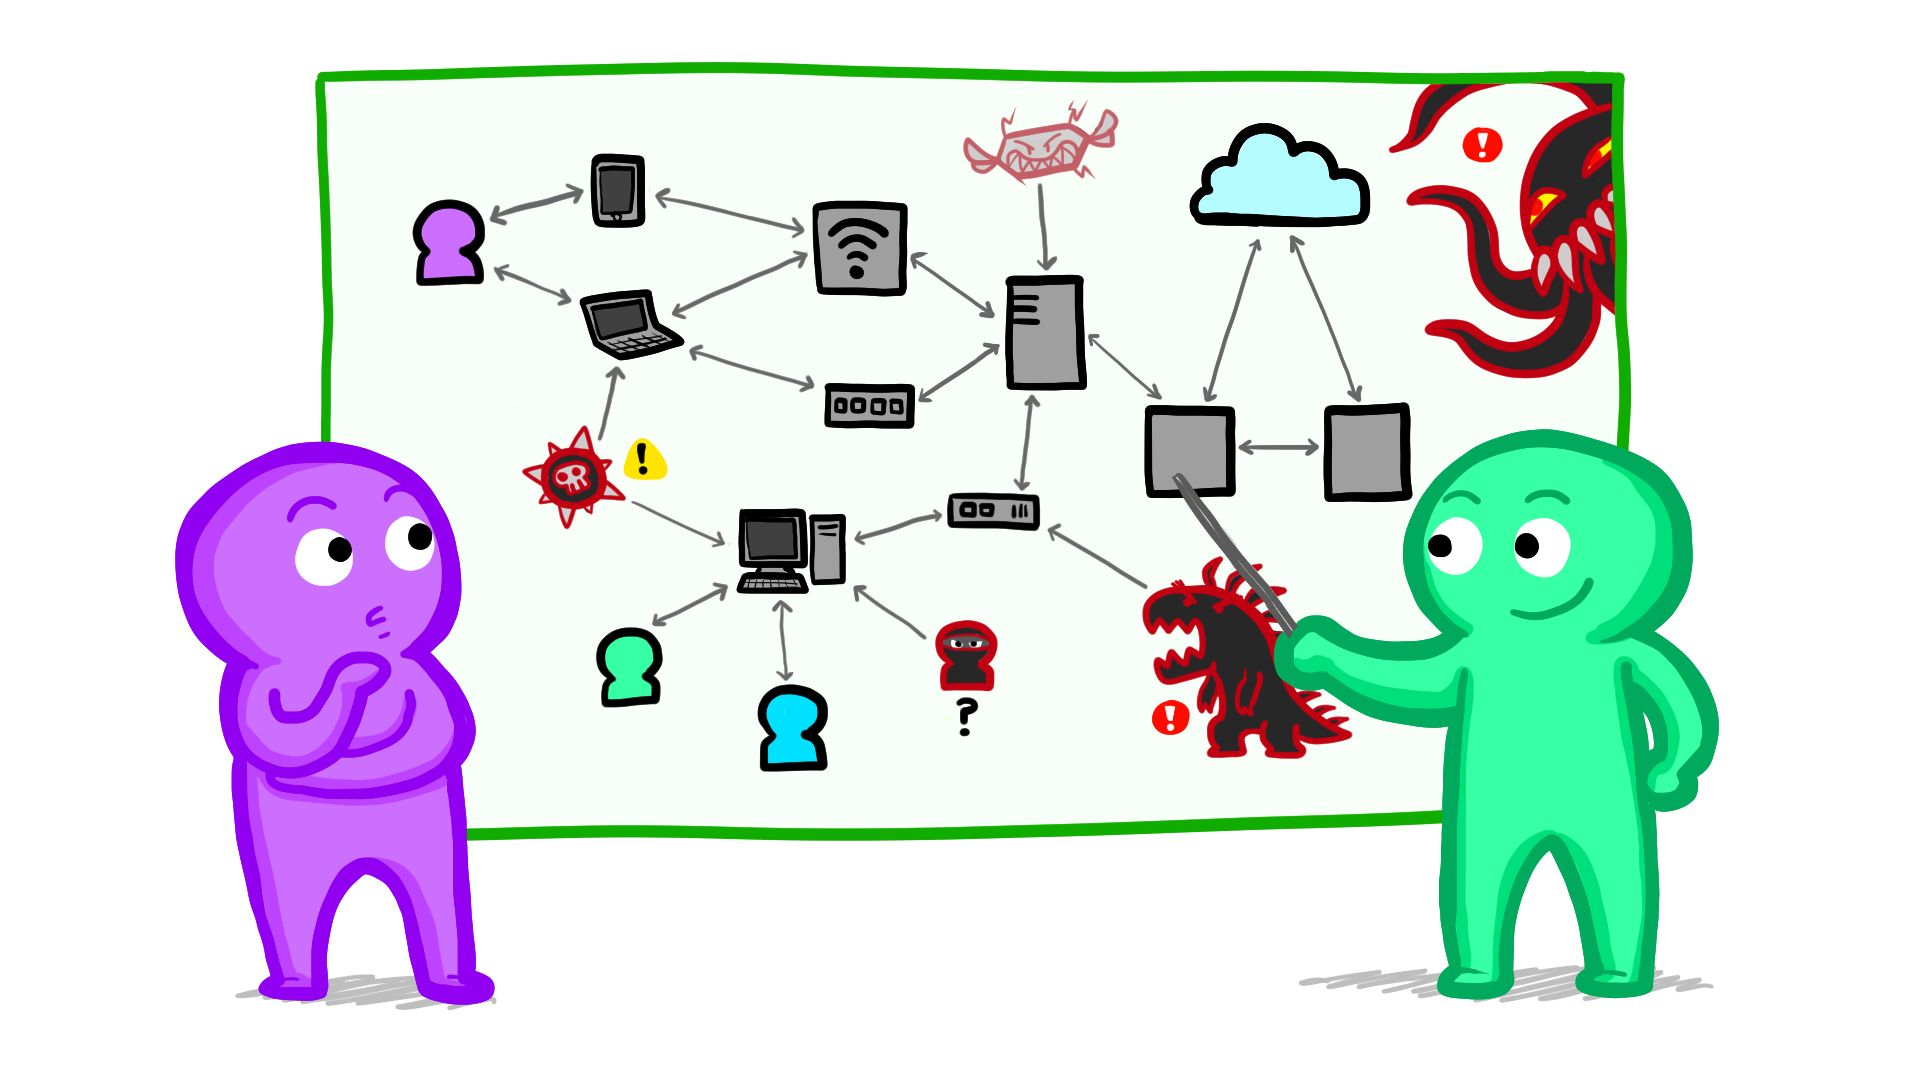 Illustration of two people looking at a whiteboard with a diagram of a computer system that includes users and potential adversaries